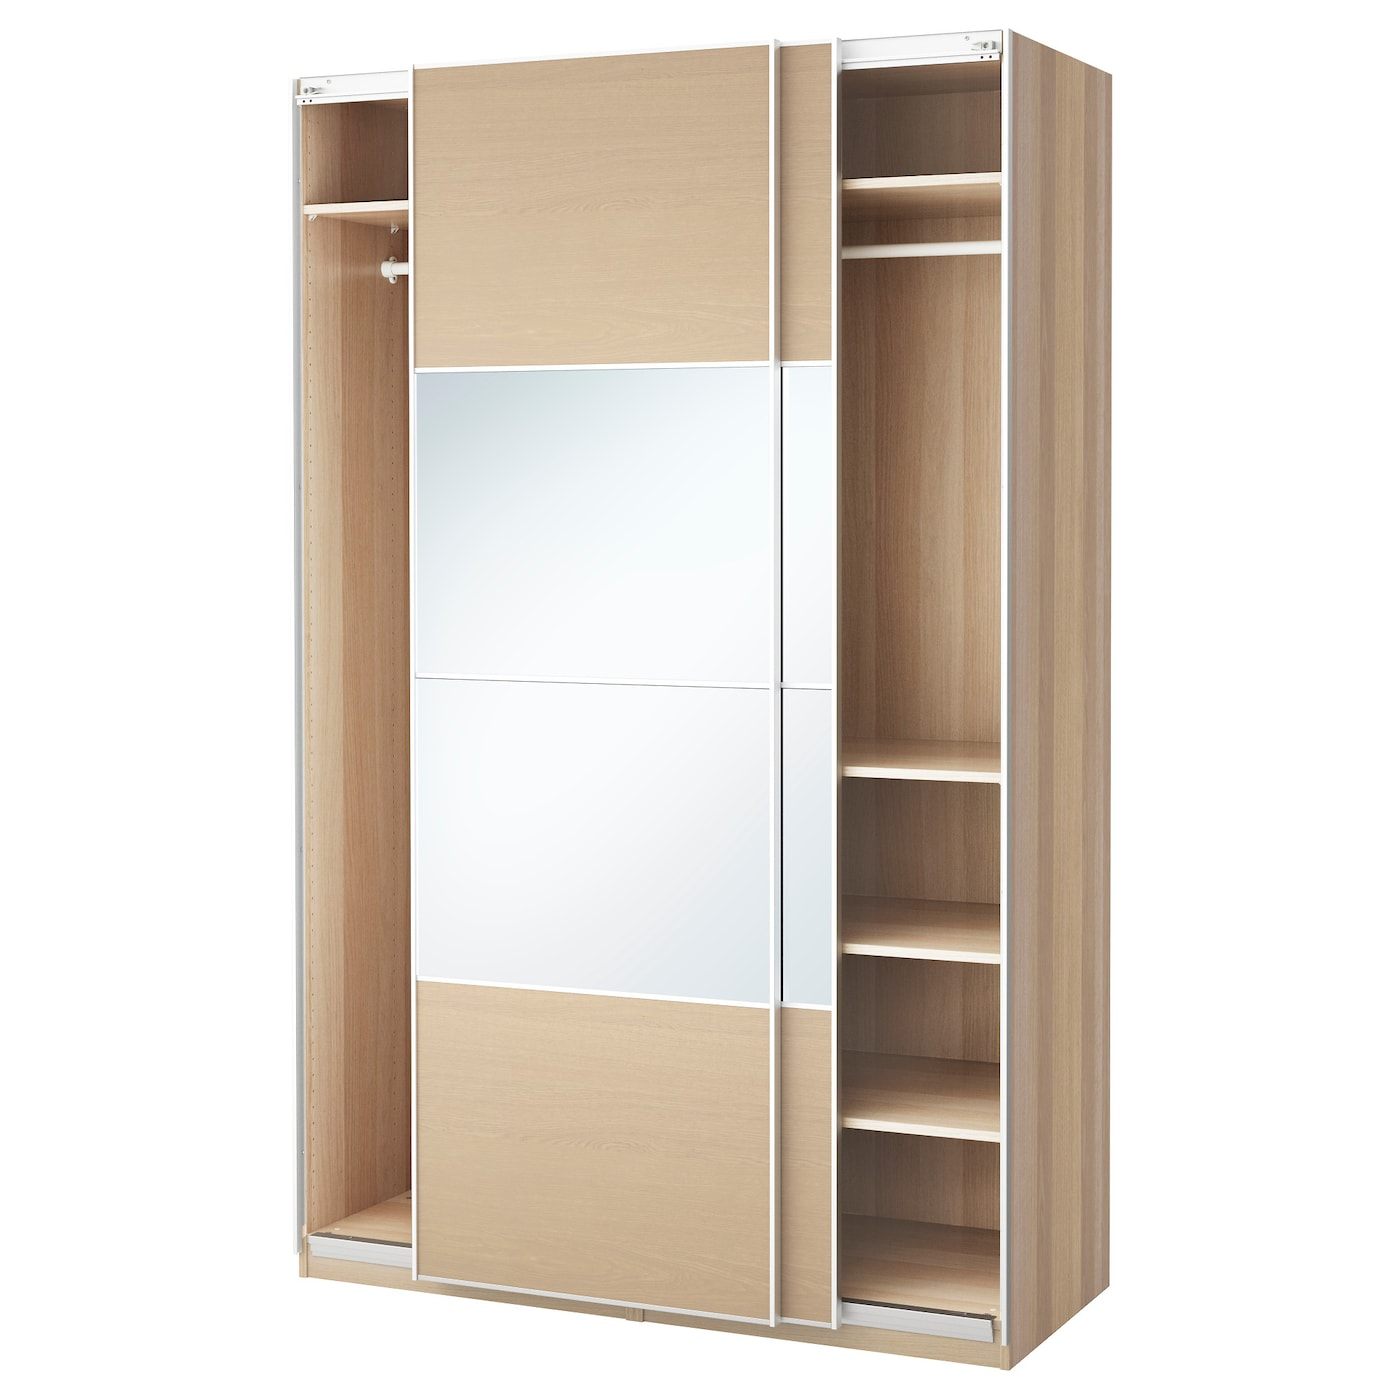 Pax wardrobe white stained oak effect auli ilseng for Armoire de rangement cuisine ikea